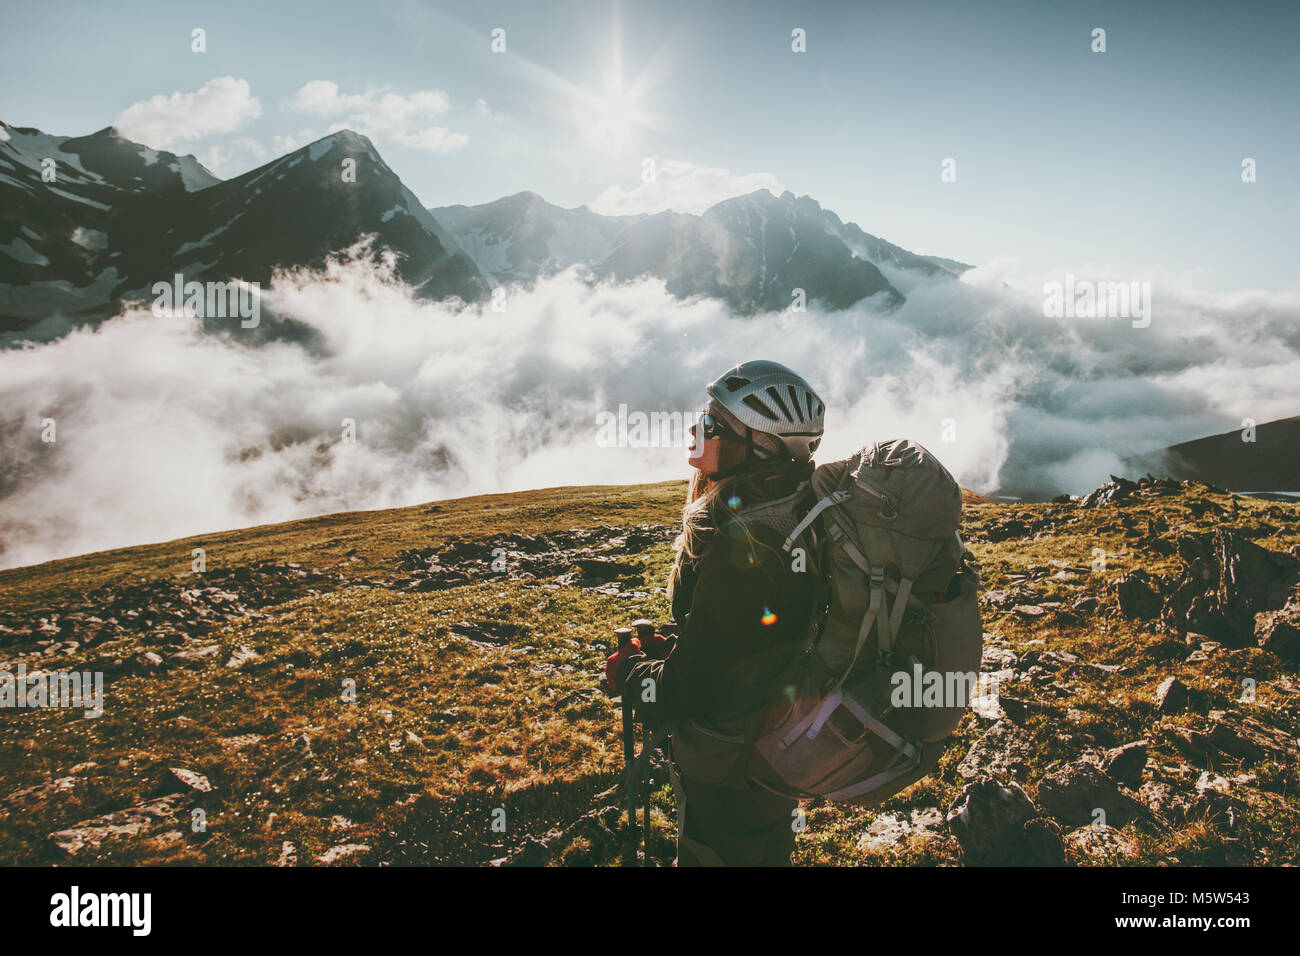 Backpacker woman observing mountains clouds landscape Travel healthy lifestyle adventure concept active summer vacations - Stock Image